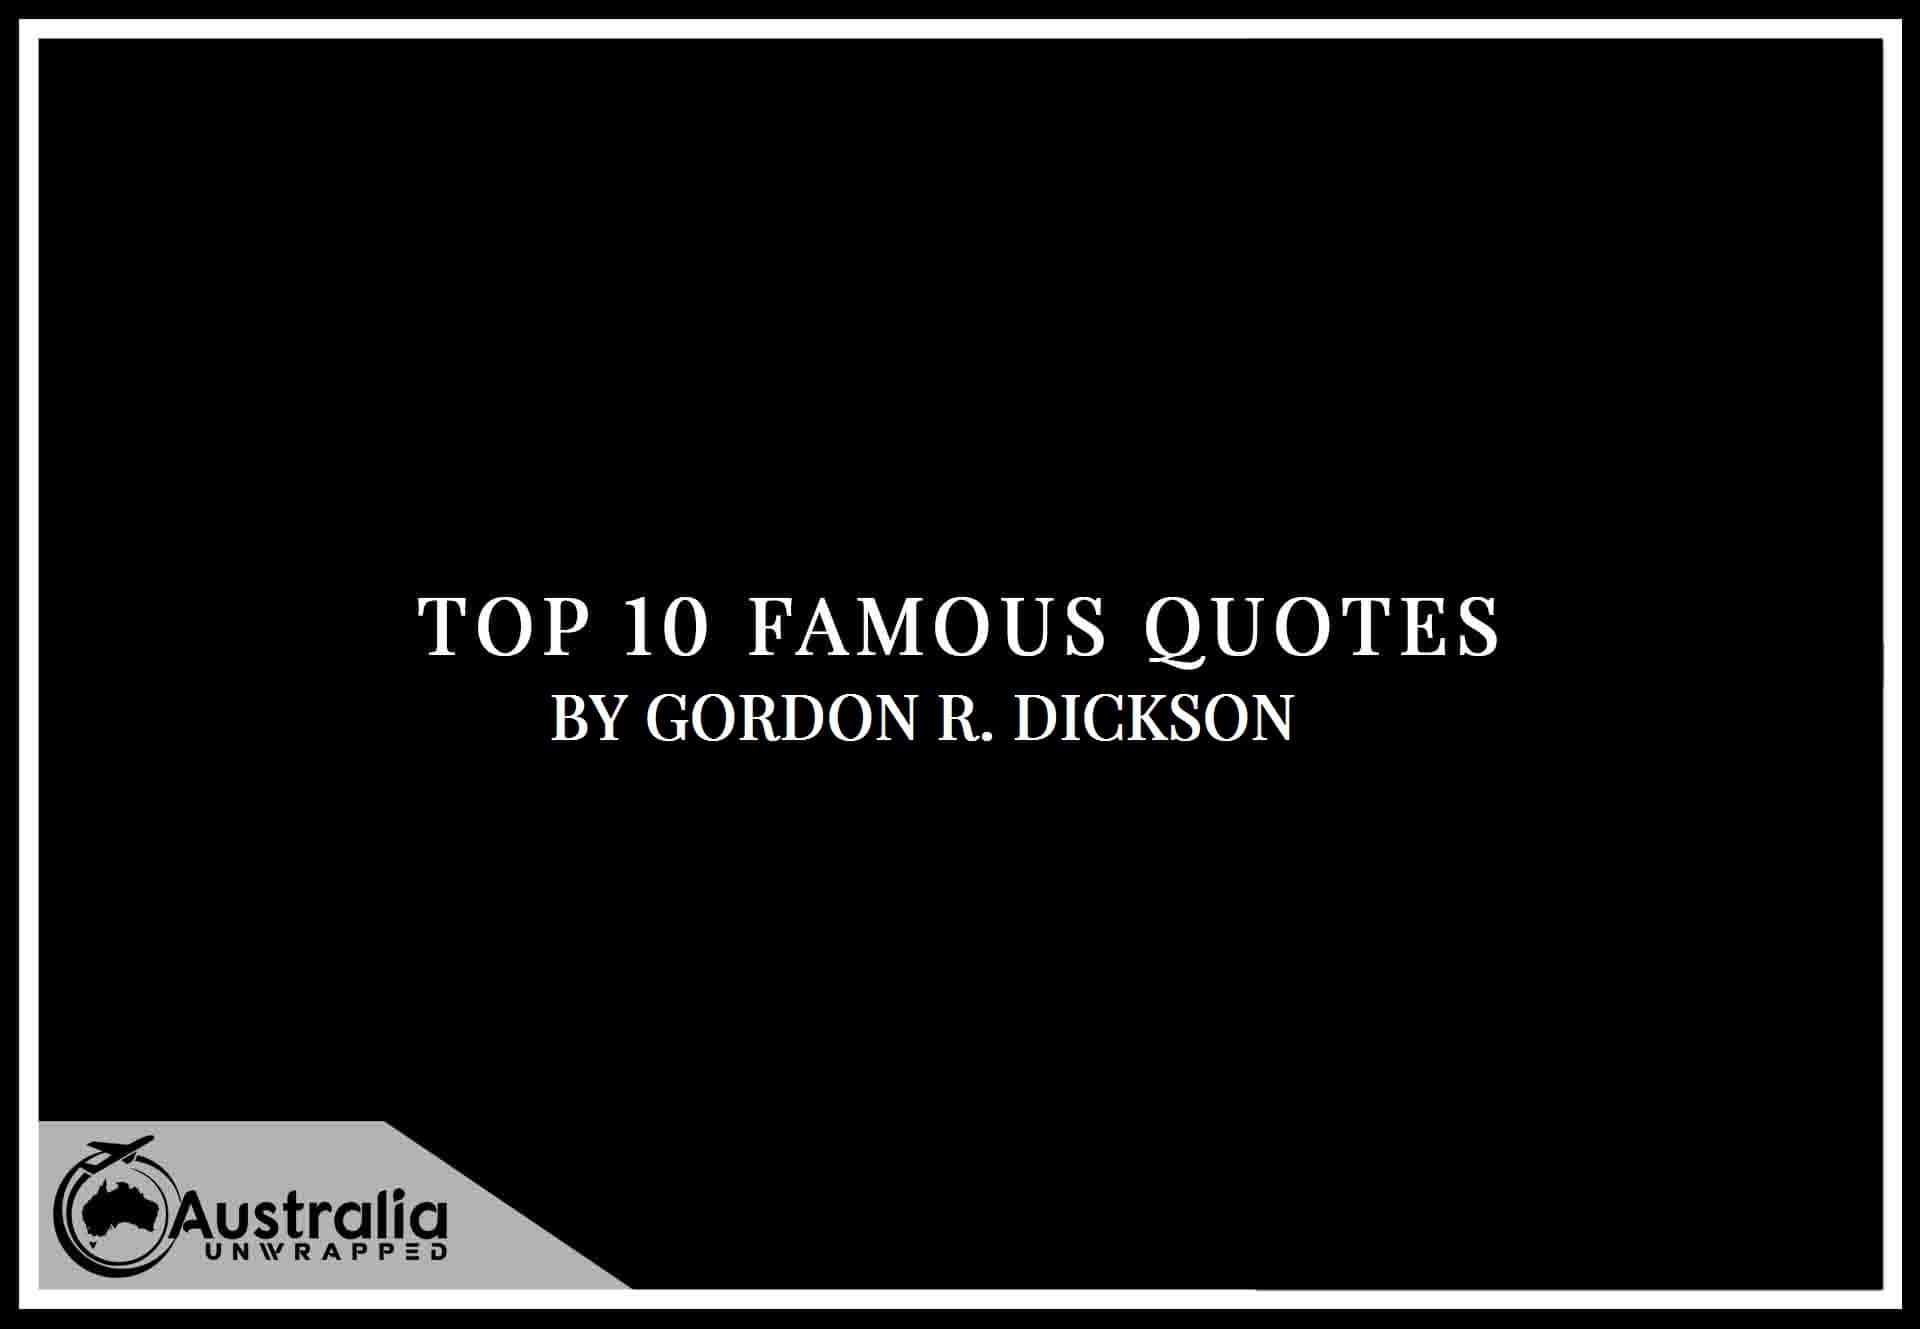 Gordon R. Dickson's Top 10 Popular and Famous Quotes